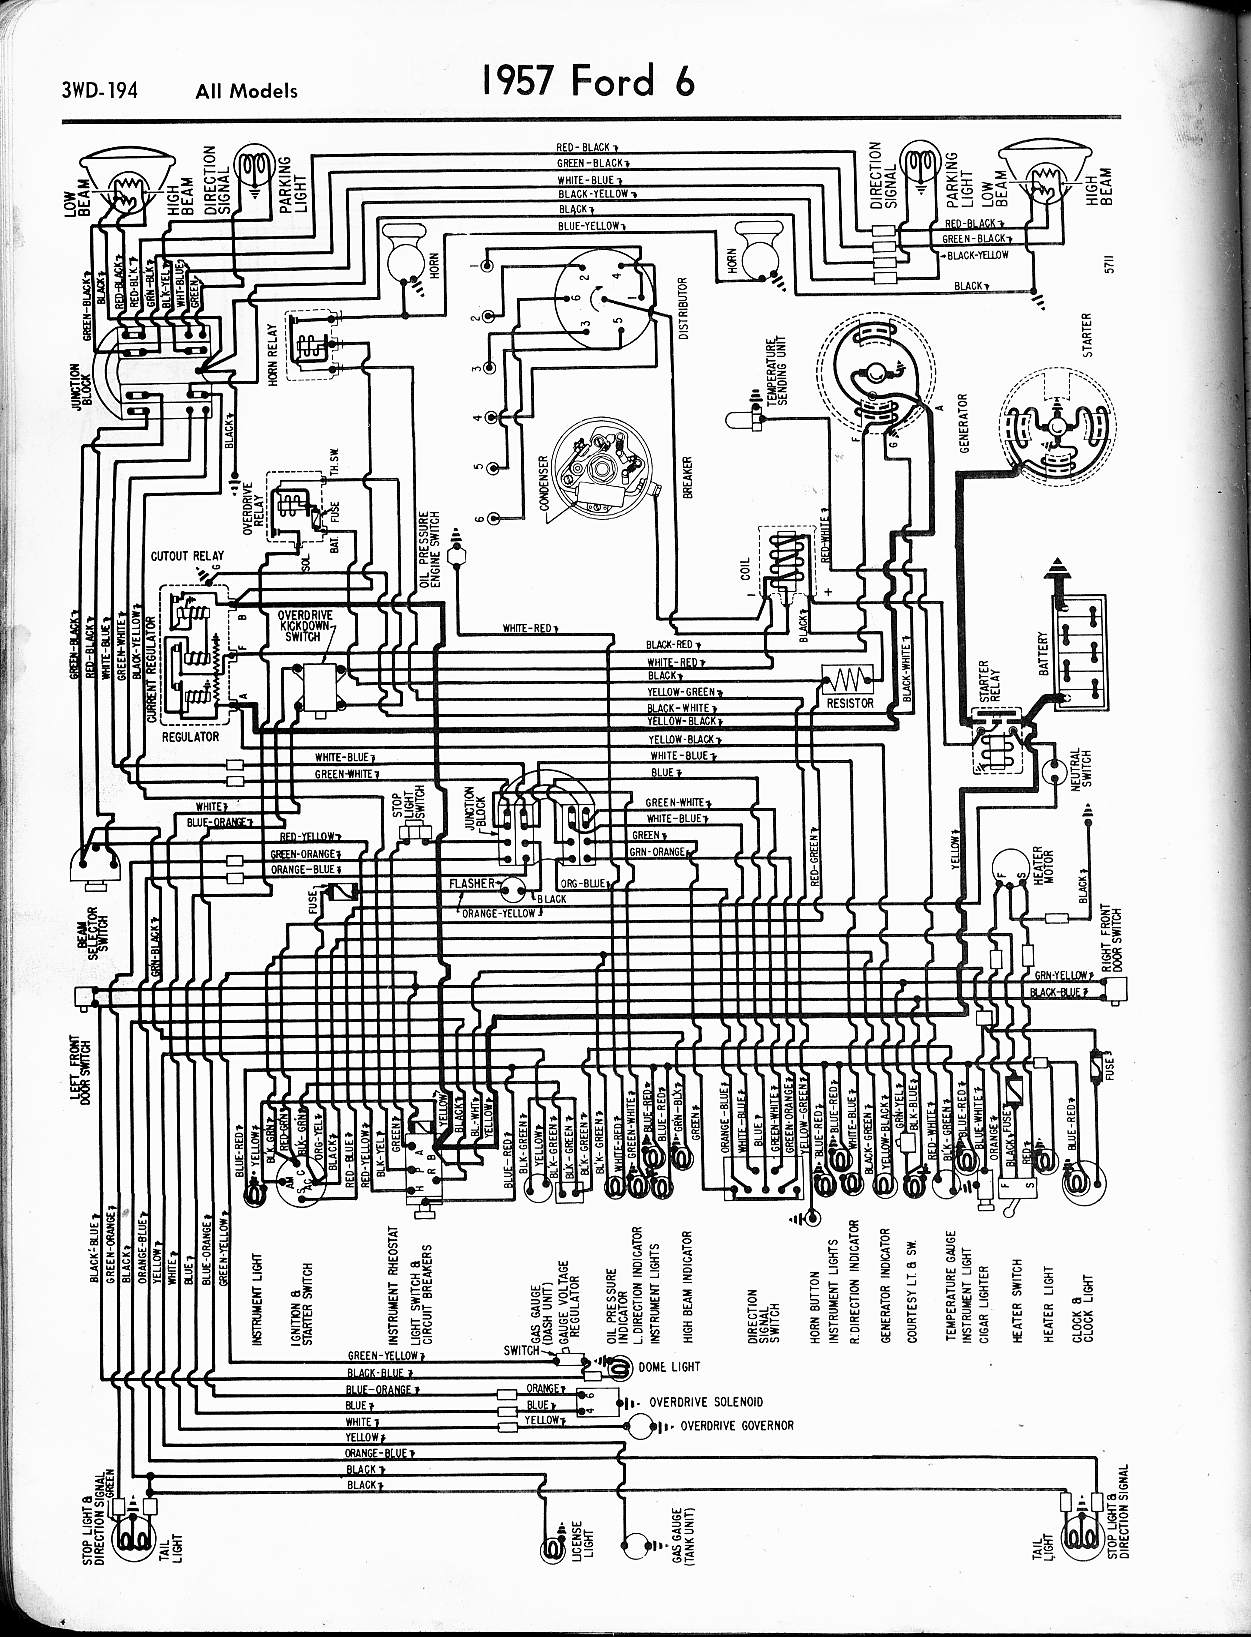 1957 ford wiring harness wiring diagram